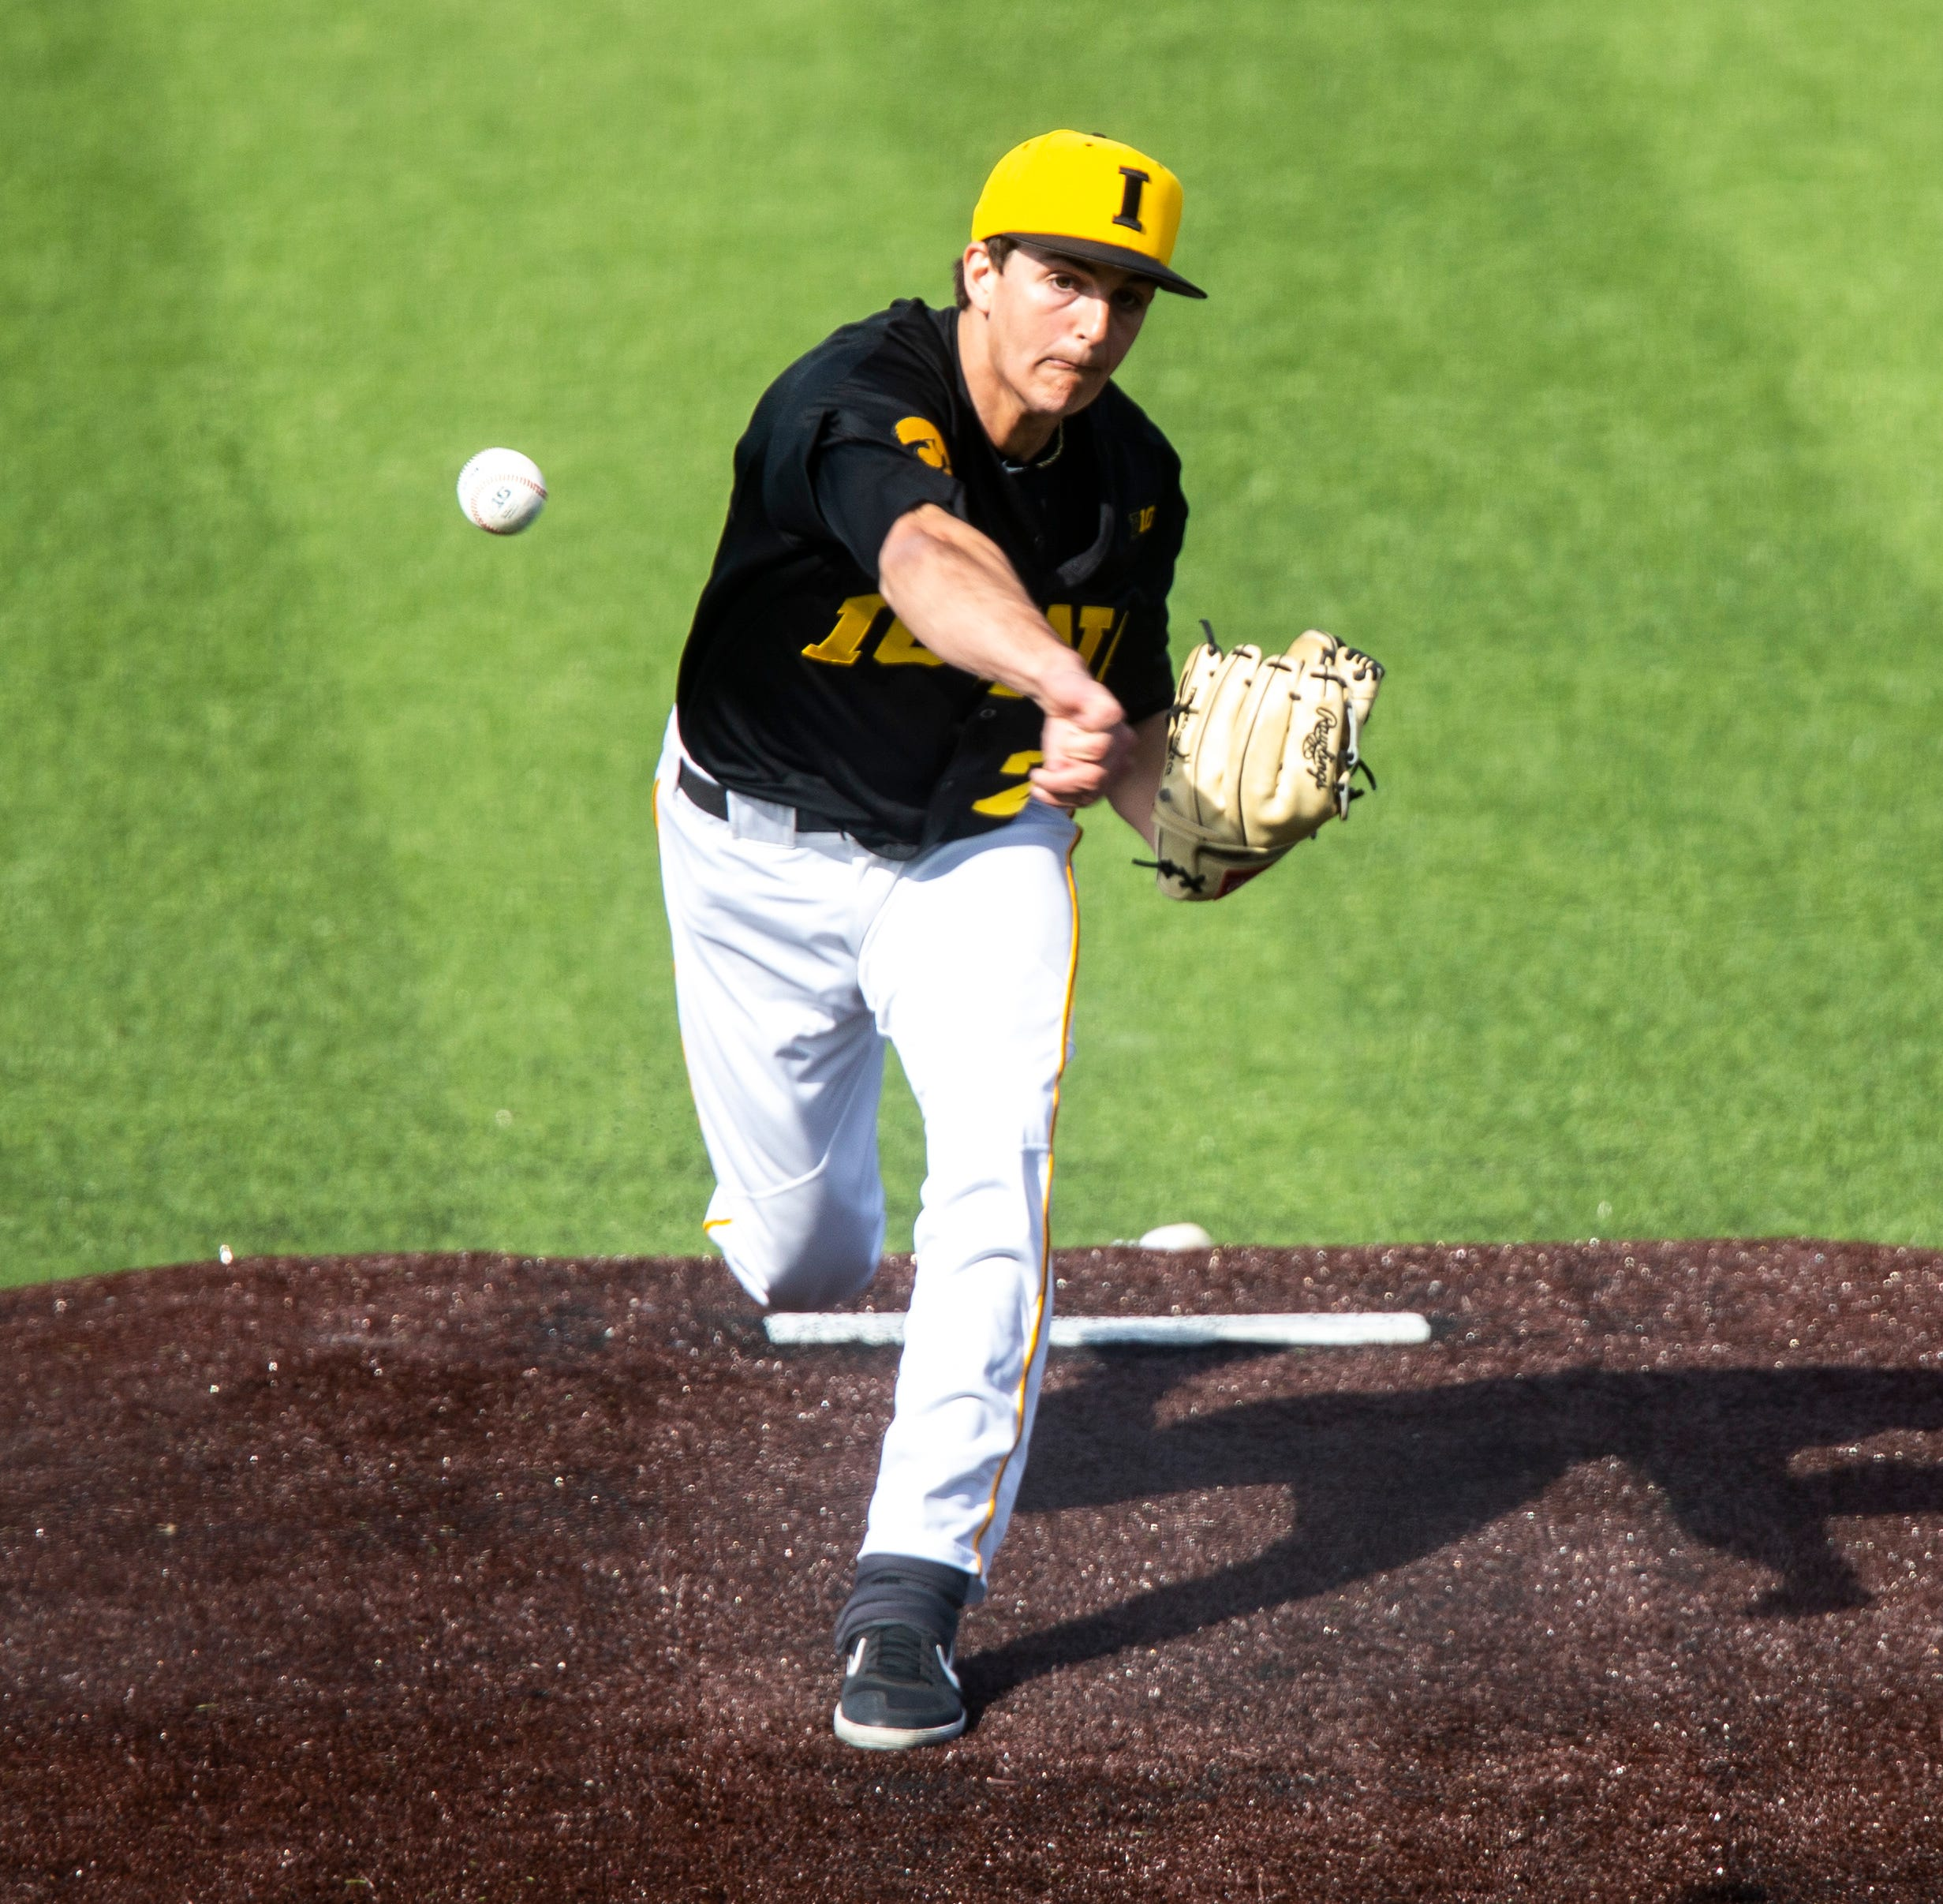 Iowa baseball: Hawkeyes look lethargic in loss to Michigan State